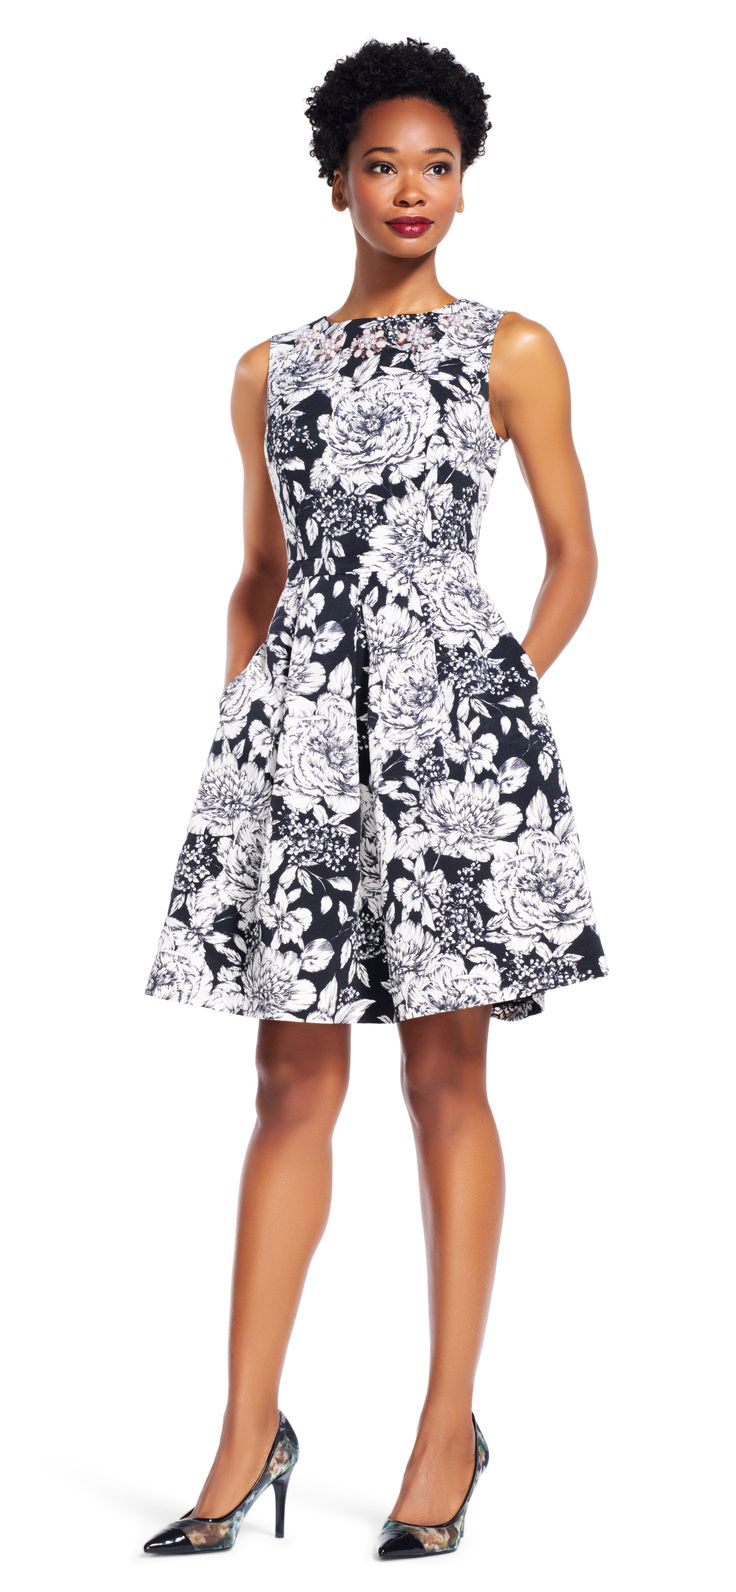 This fit and flare dress is not your garden-variety floral print. This short dress features all over hand-drawn floral print, large pleats to create a full skirt, v-back and convenient pockets. Featuring a sleeveless silhouette and a jeweled neckline, this pretty party dress doesn't need over-accessorizing. Add your favorite pumps and this look is complete.